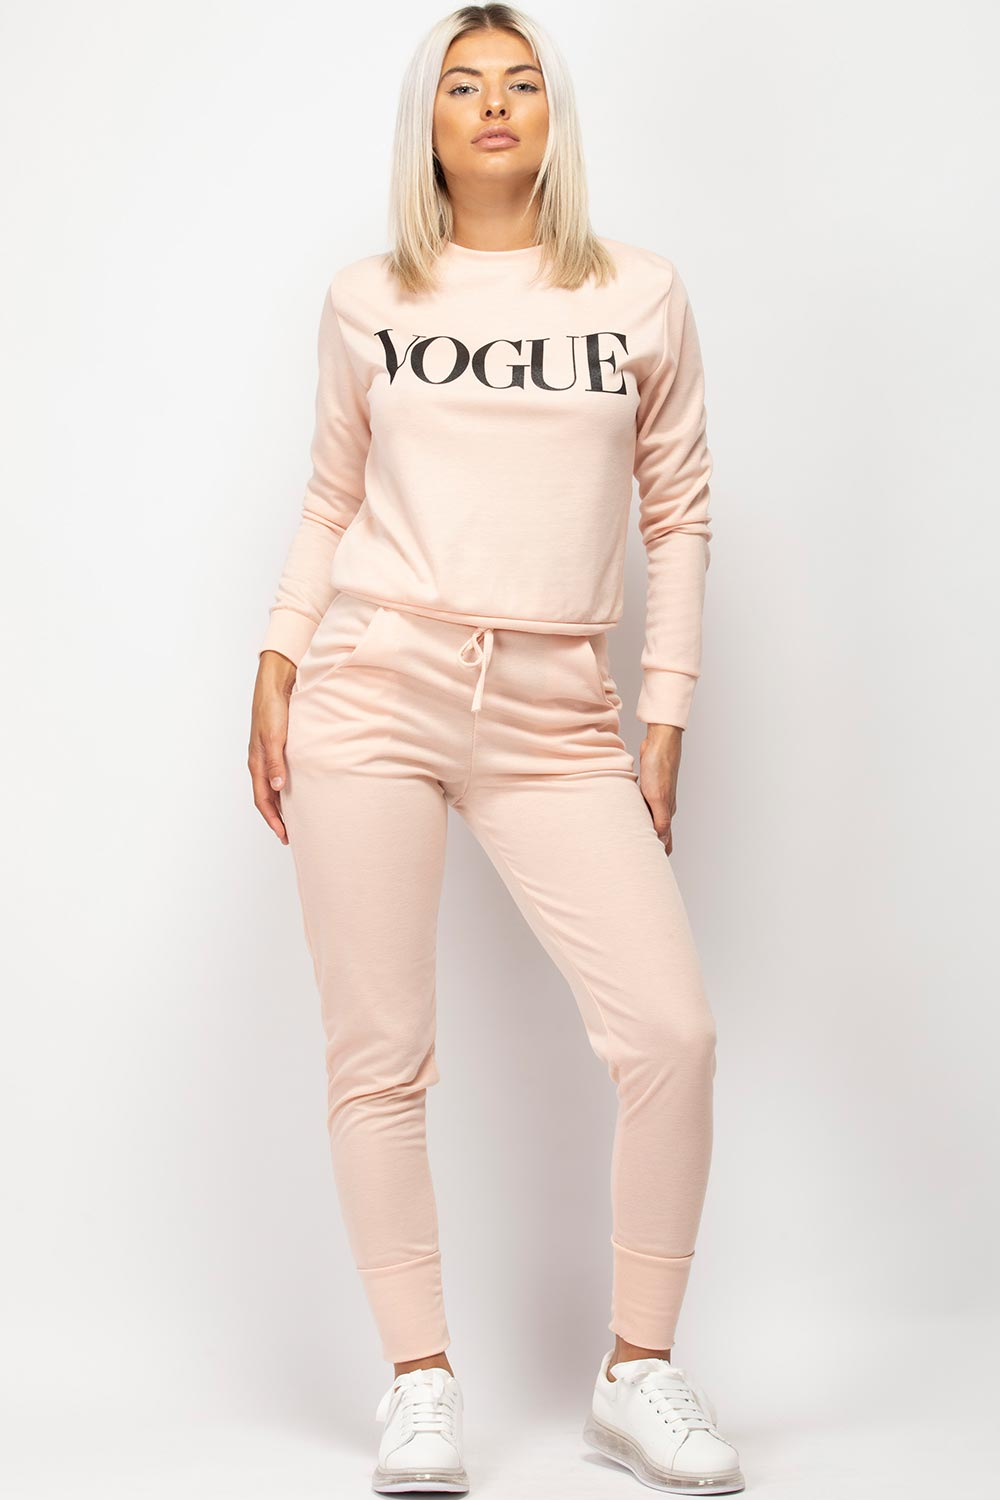 vogue slogan loungewear set